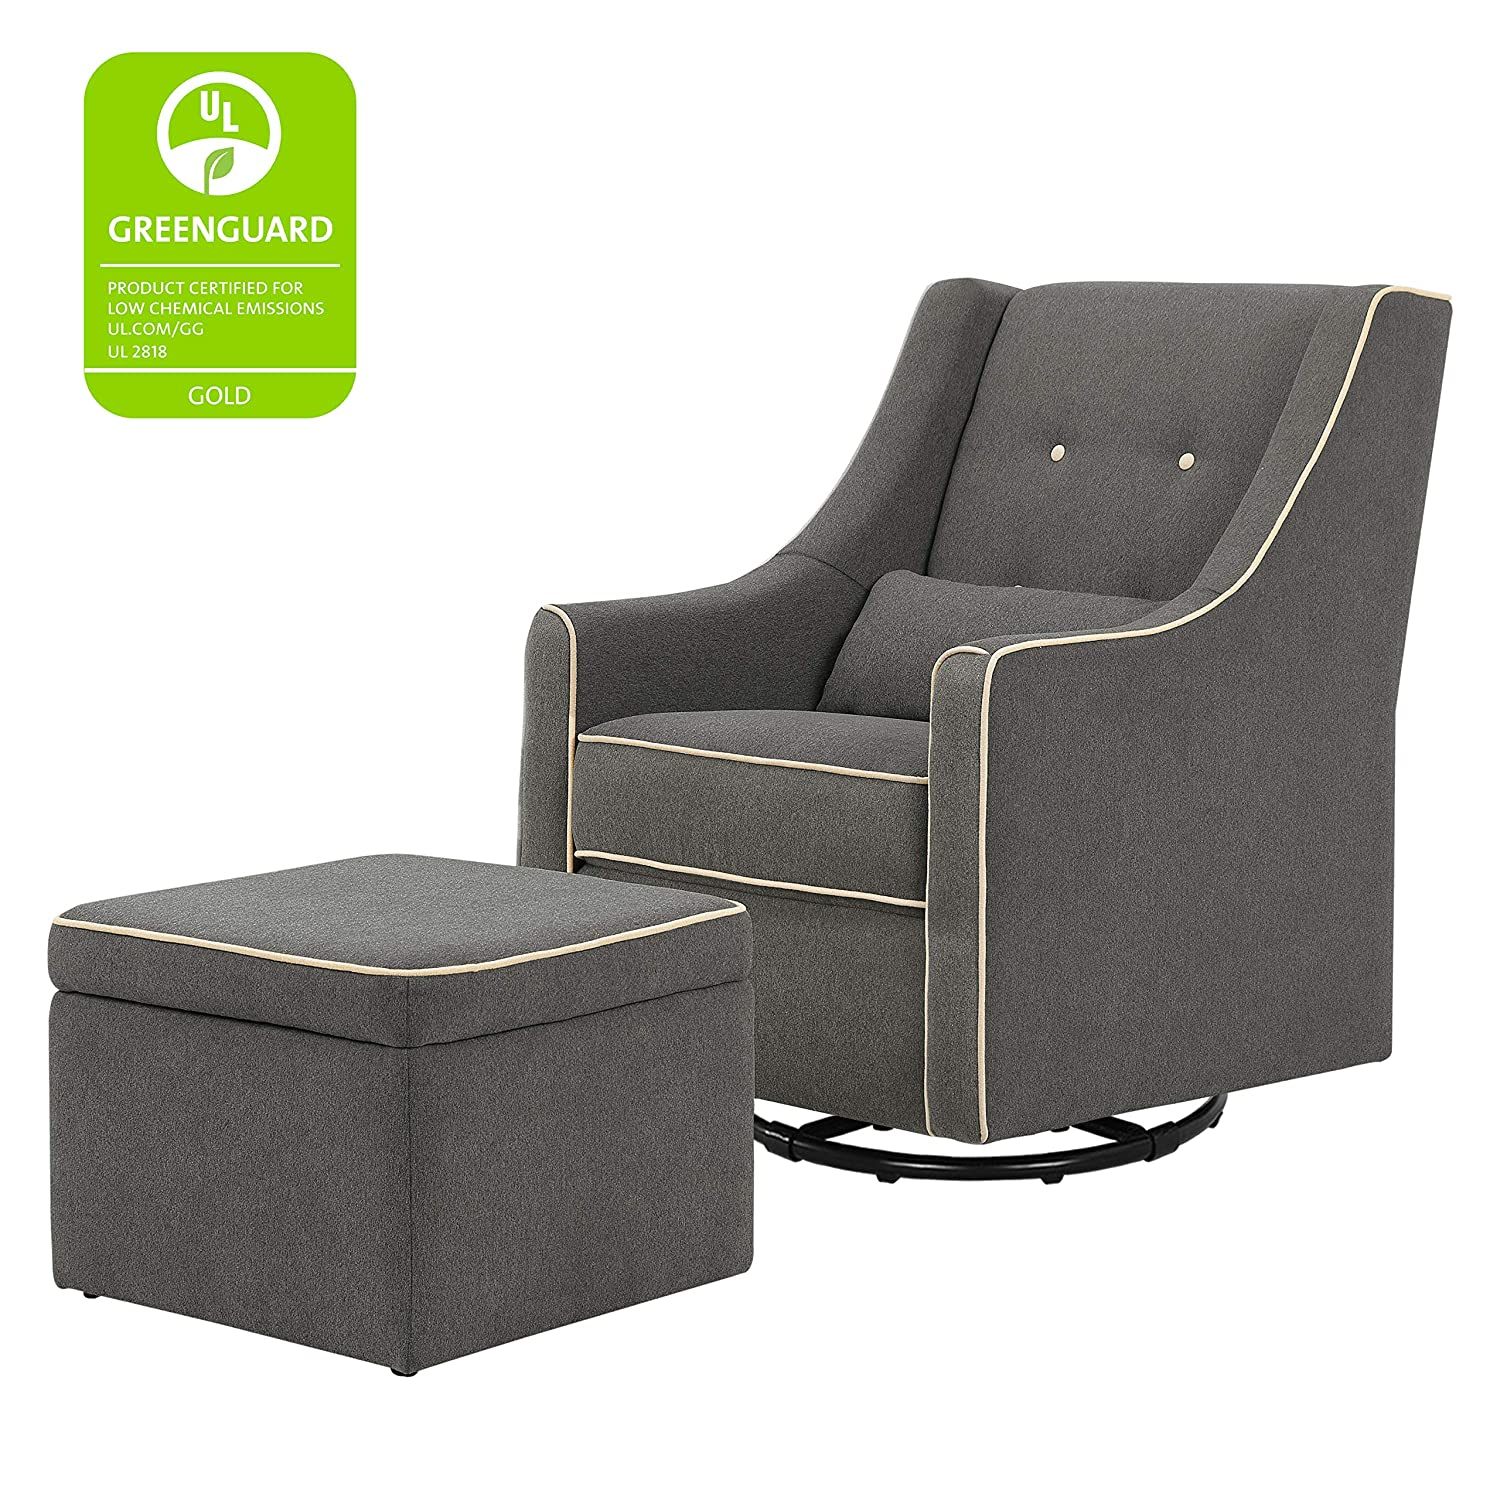 Awesome Davinci Owen Upholstered Swivel Glider With Side Pocket And Storage Ottoman Dark Grey With Cream Piping Pabps2019 Chair Design Images Pabps2019Com